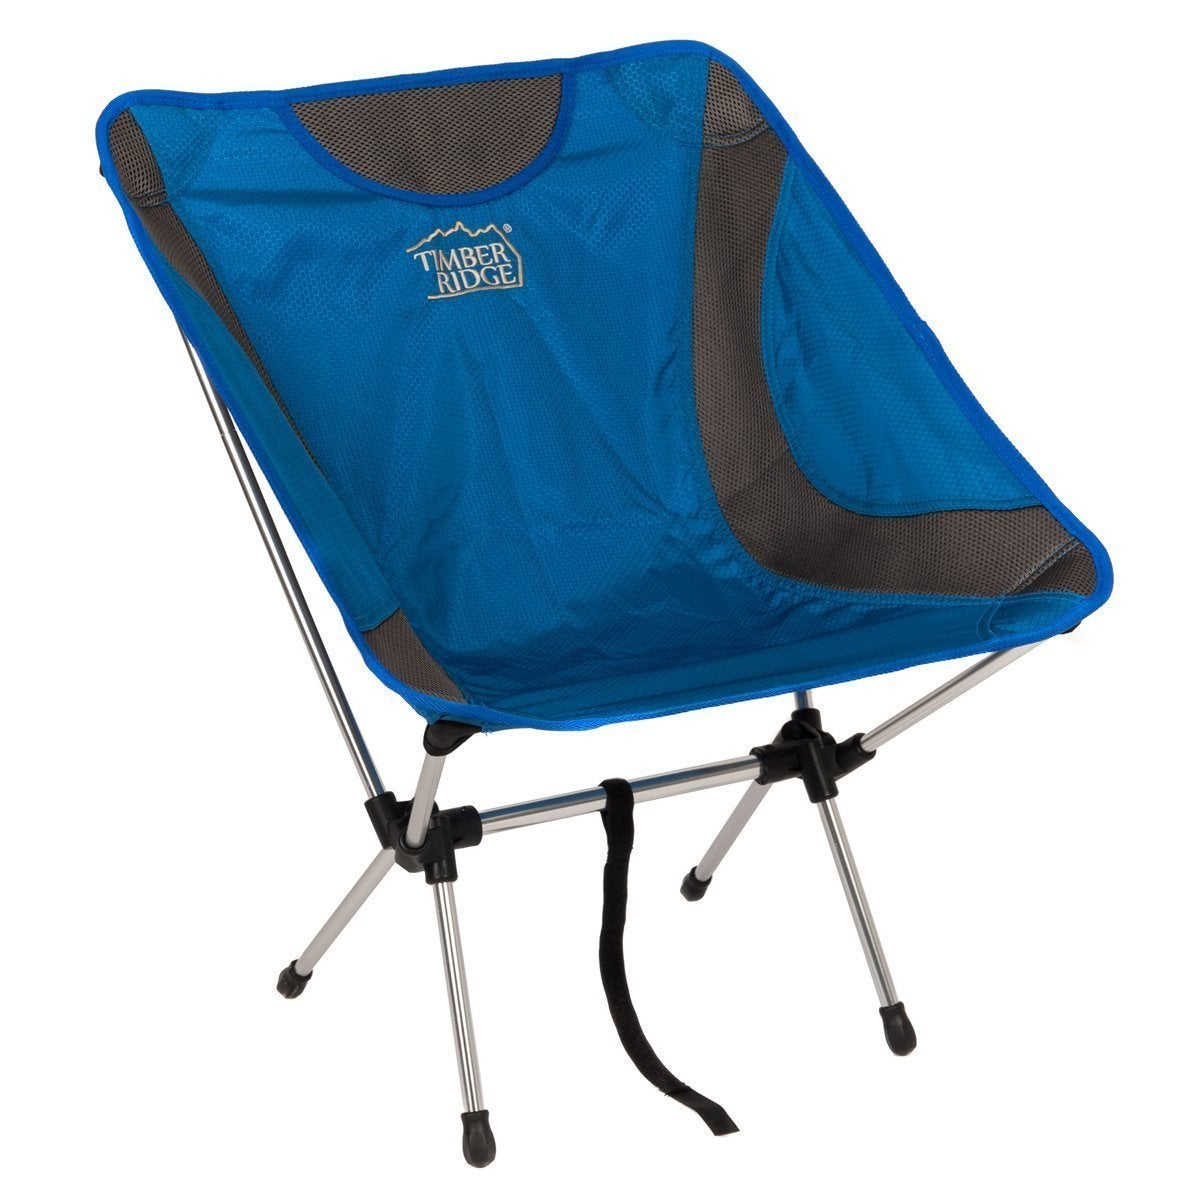 TimberRidge Blue Aluminum Ultra Lightweight Frame Folding...